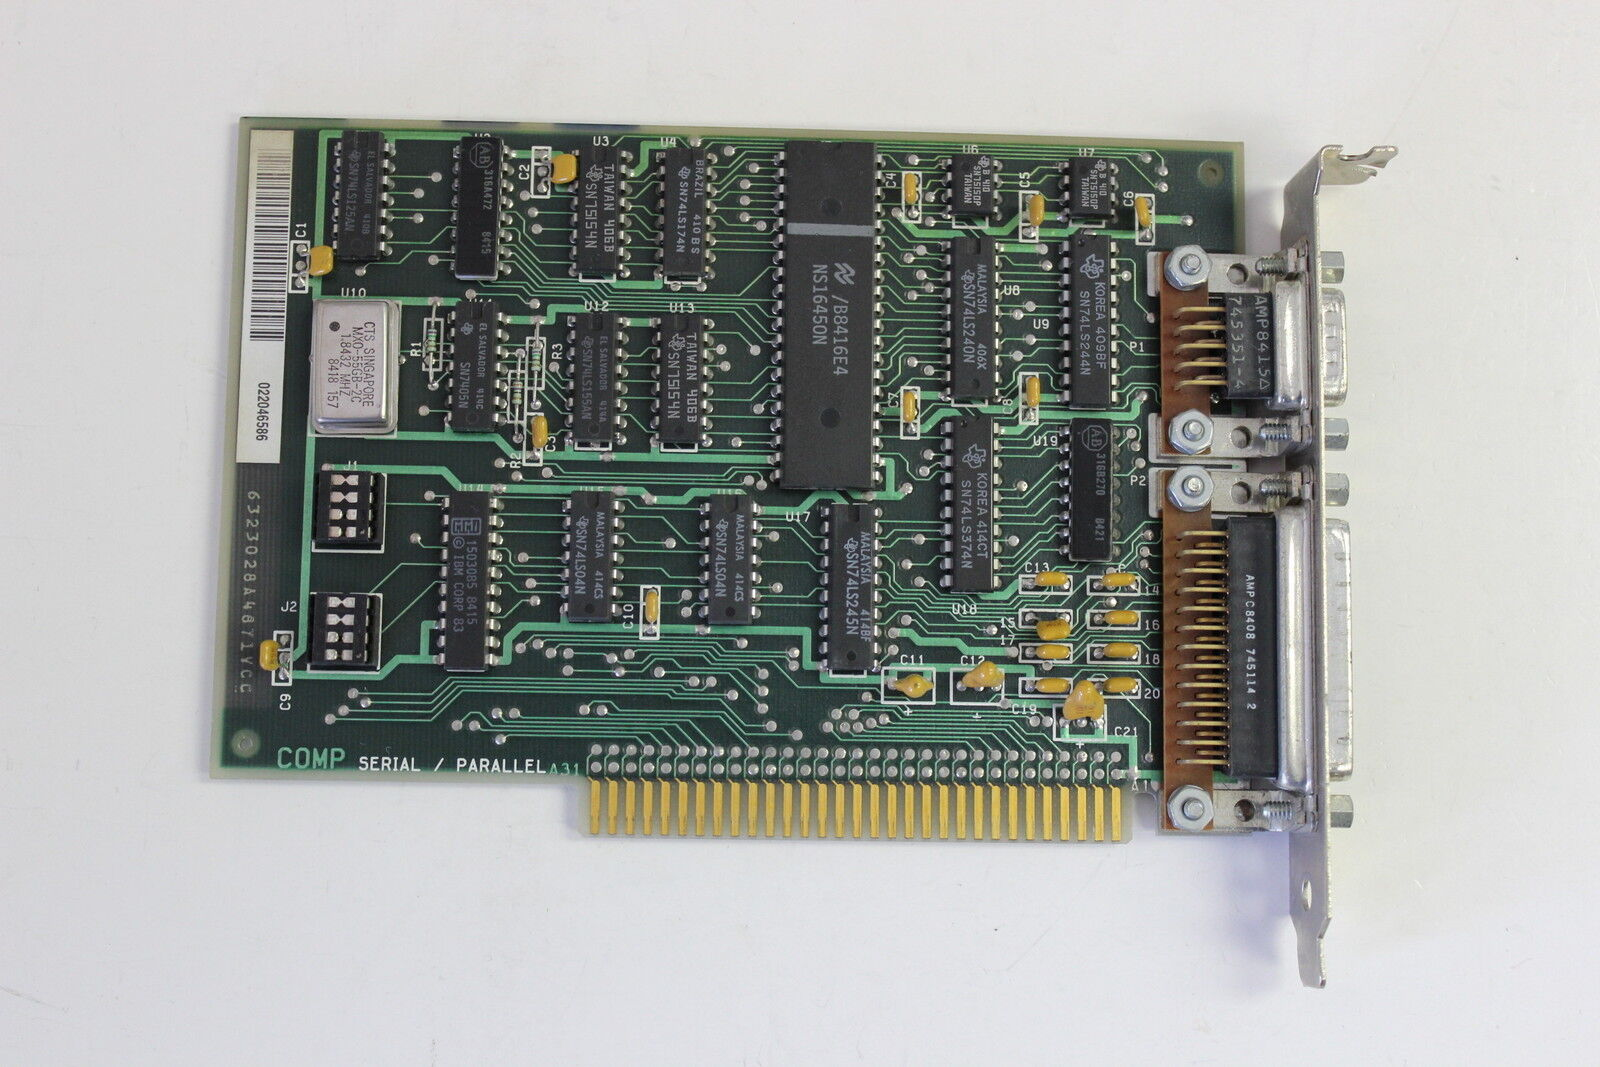 IBM 6323028 SERIAL/PARALLEL 8 BIT ISA ADAPTER BOARD 6320947 WITH WARRANTY